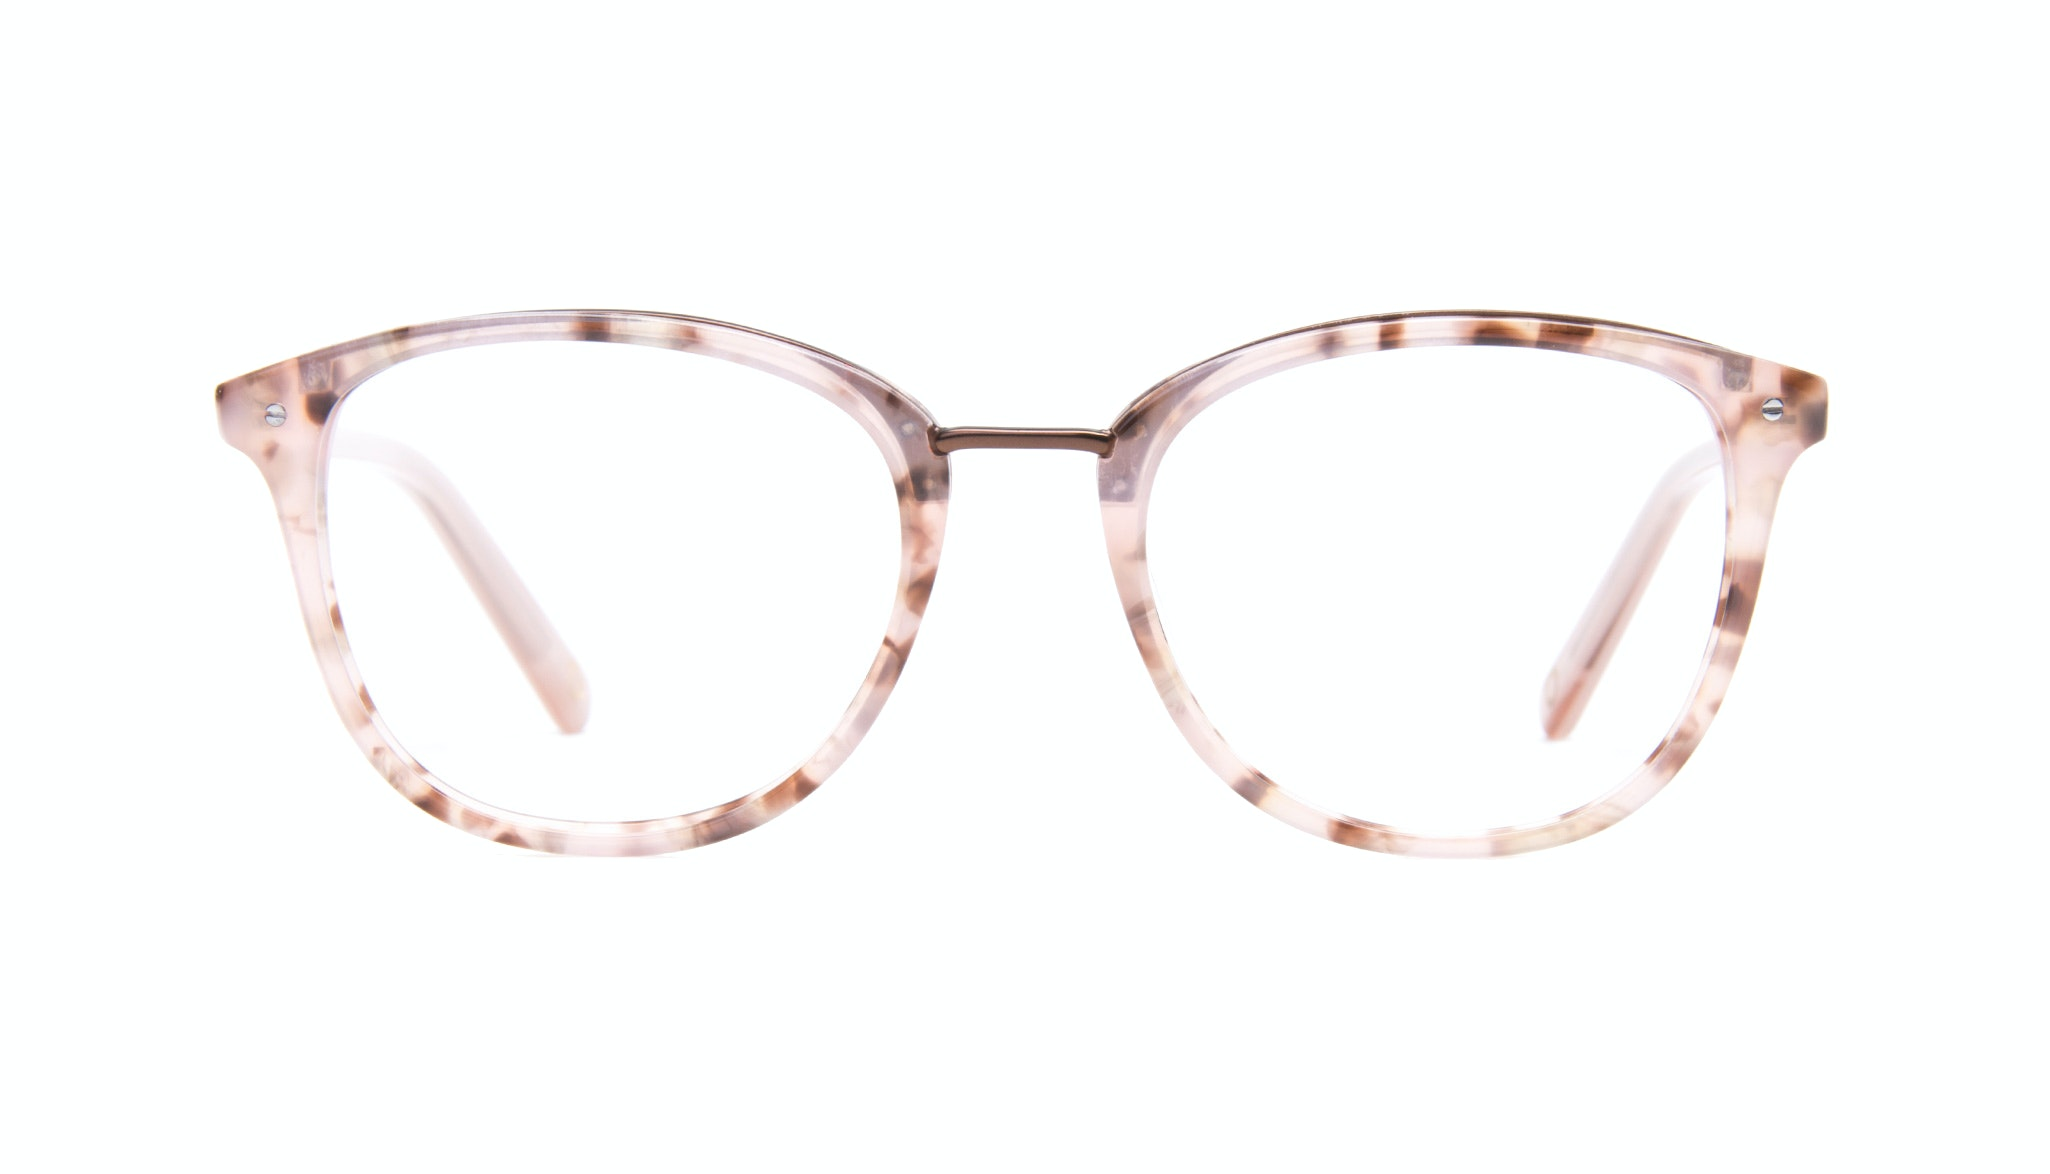 Affordable Fashion Glasses Square Round Eyeglasses Women Ella Blush Tortie